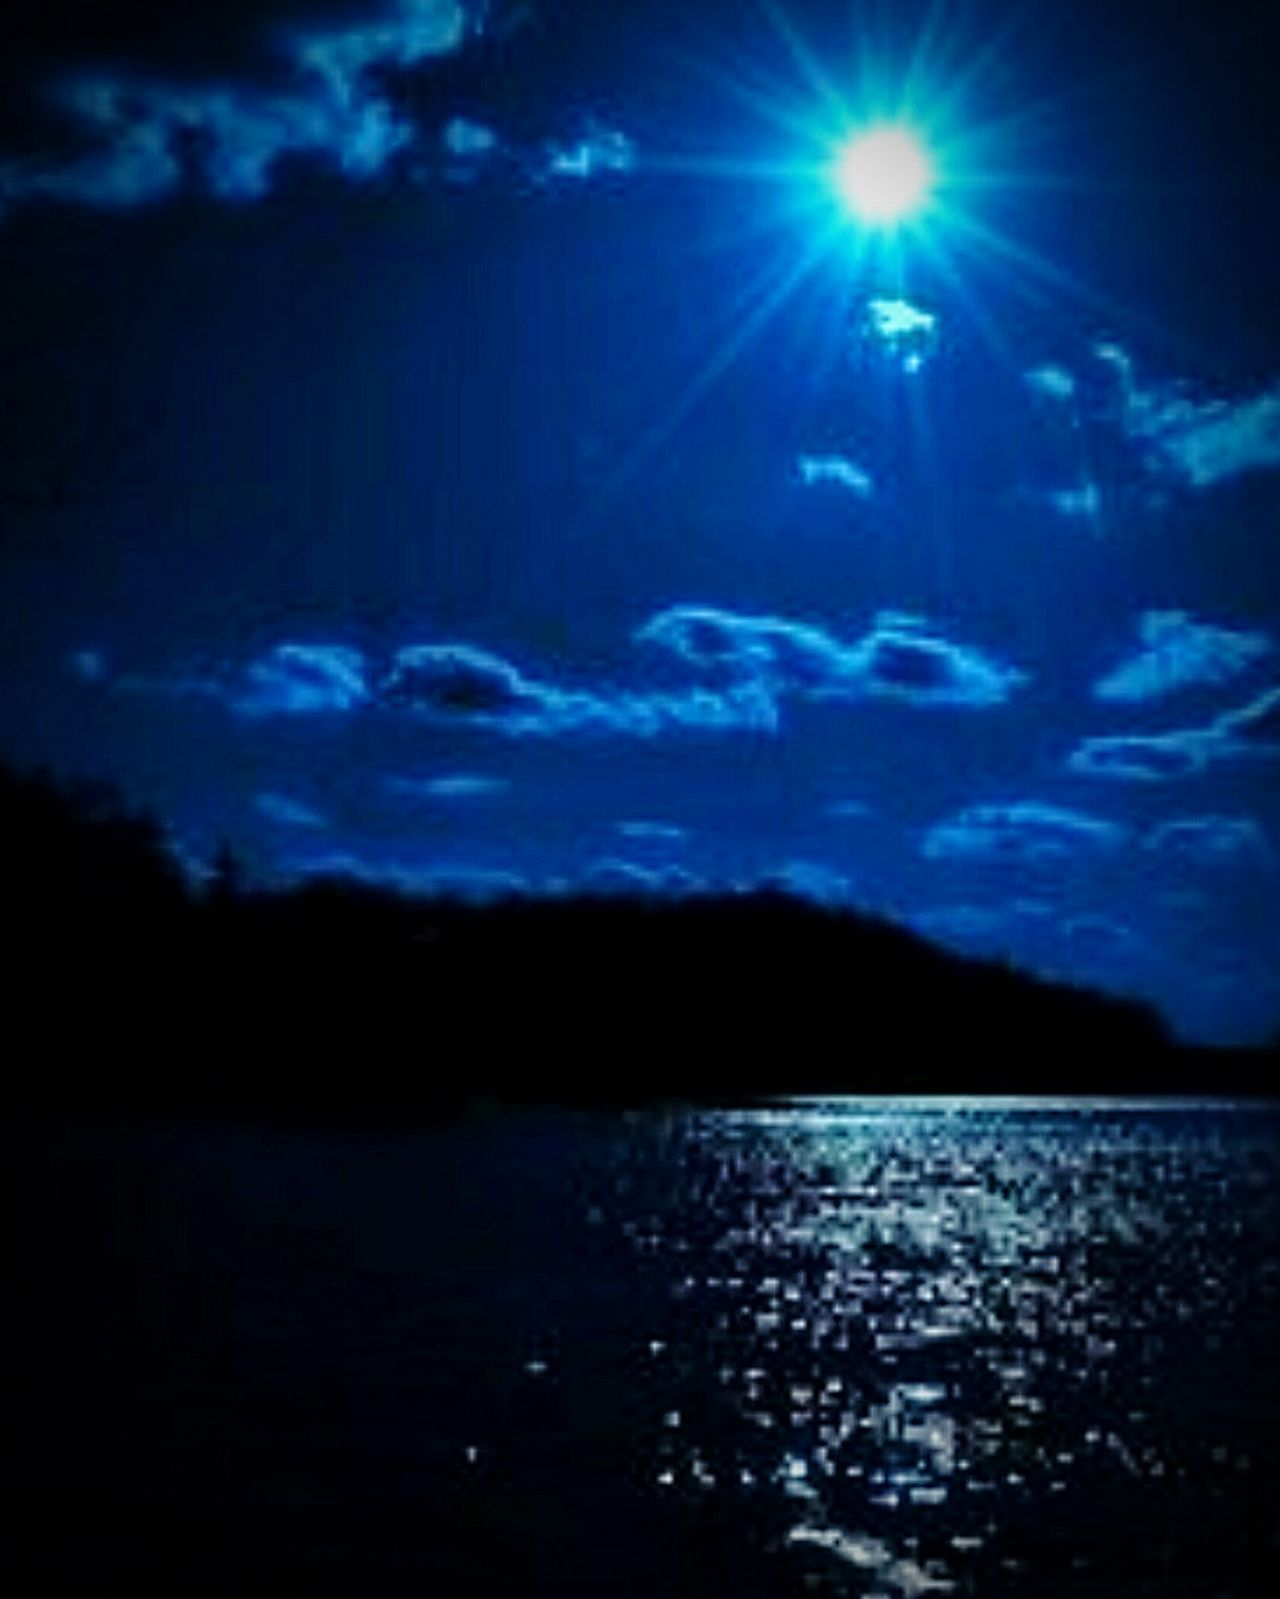 Blue Outdoors Dark Sky Scenics Tranquil Scene Horizon Over Water Water Lightning No People EyeEmNewHere Black Scratch Artwork Check This Out Arts Culture And Entertainment Photography Illuminated Dark Art Tranquility Glowing Moonlight Moon Reflection Water Reflections, Glowing Moon